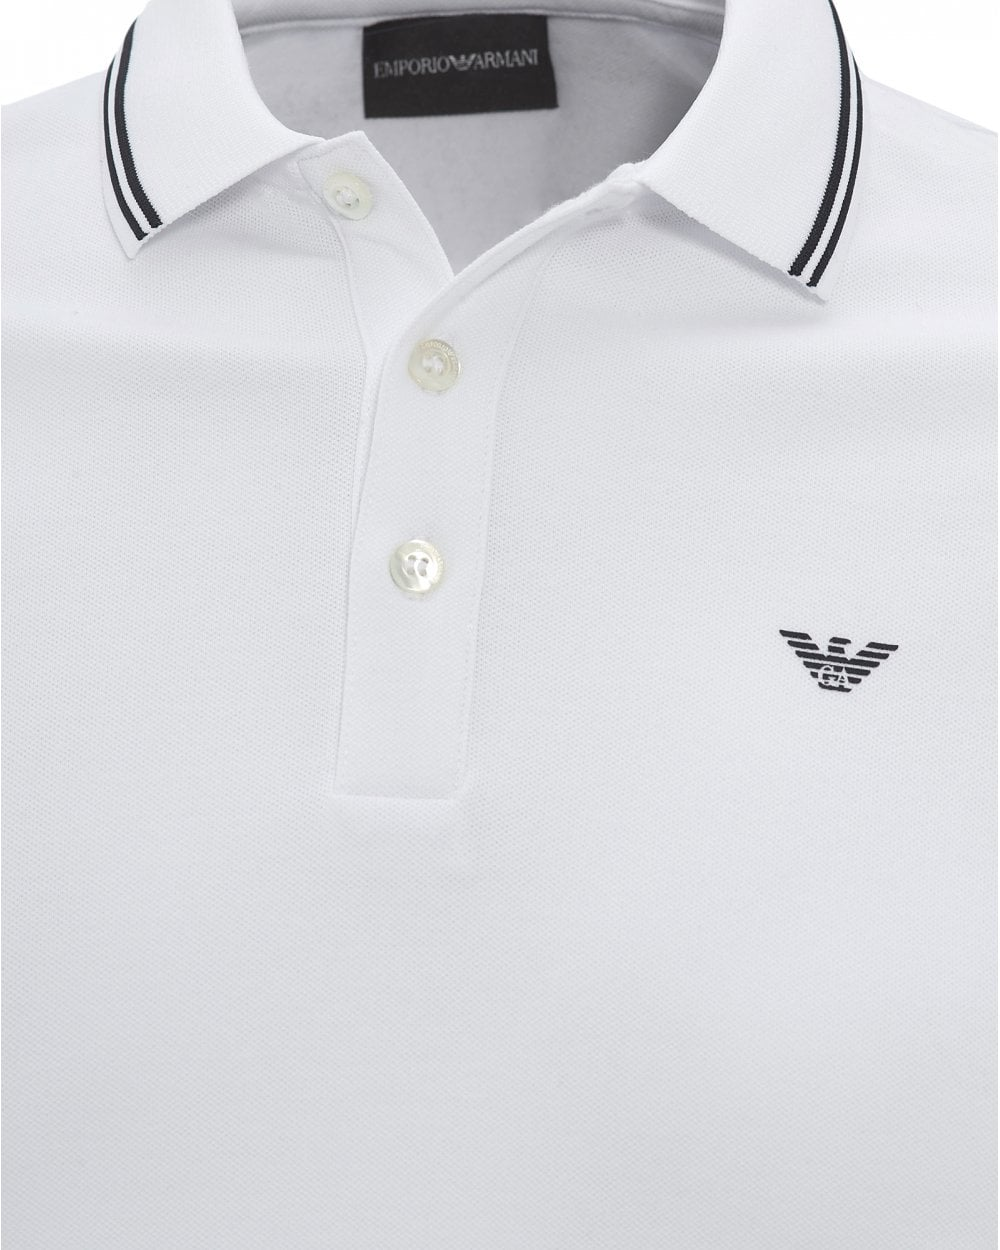 c167bf41 Mens Tipped Collar & Cuff Polo Shirt, Modern Fit White Polo